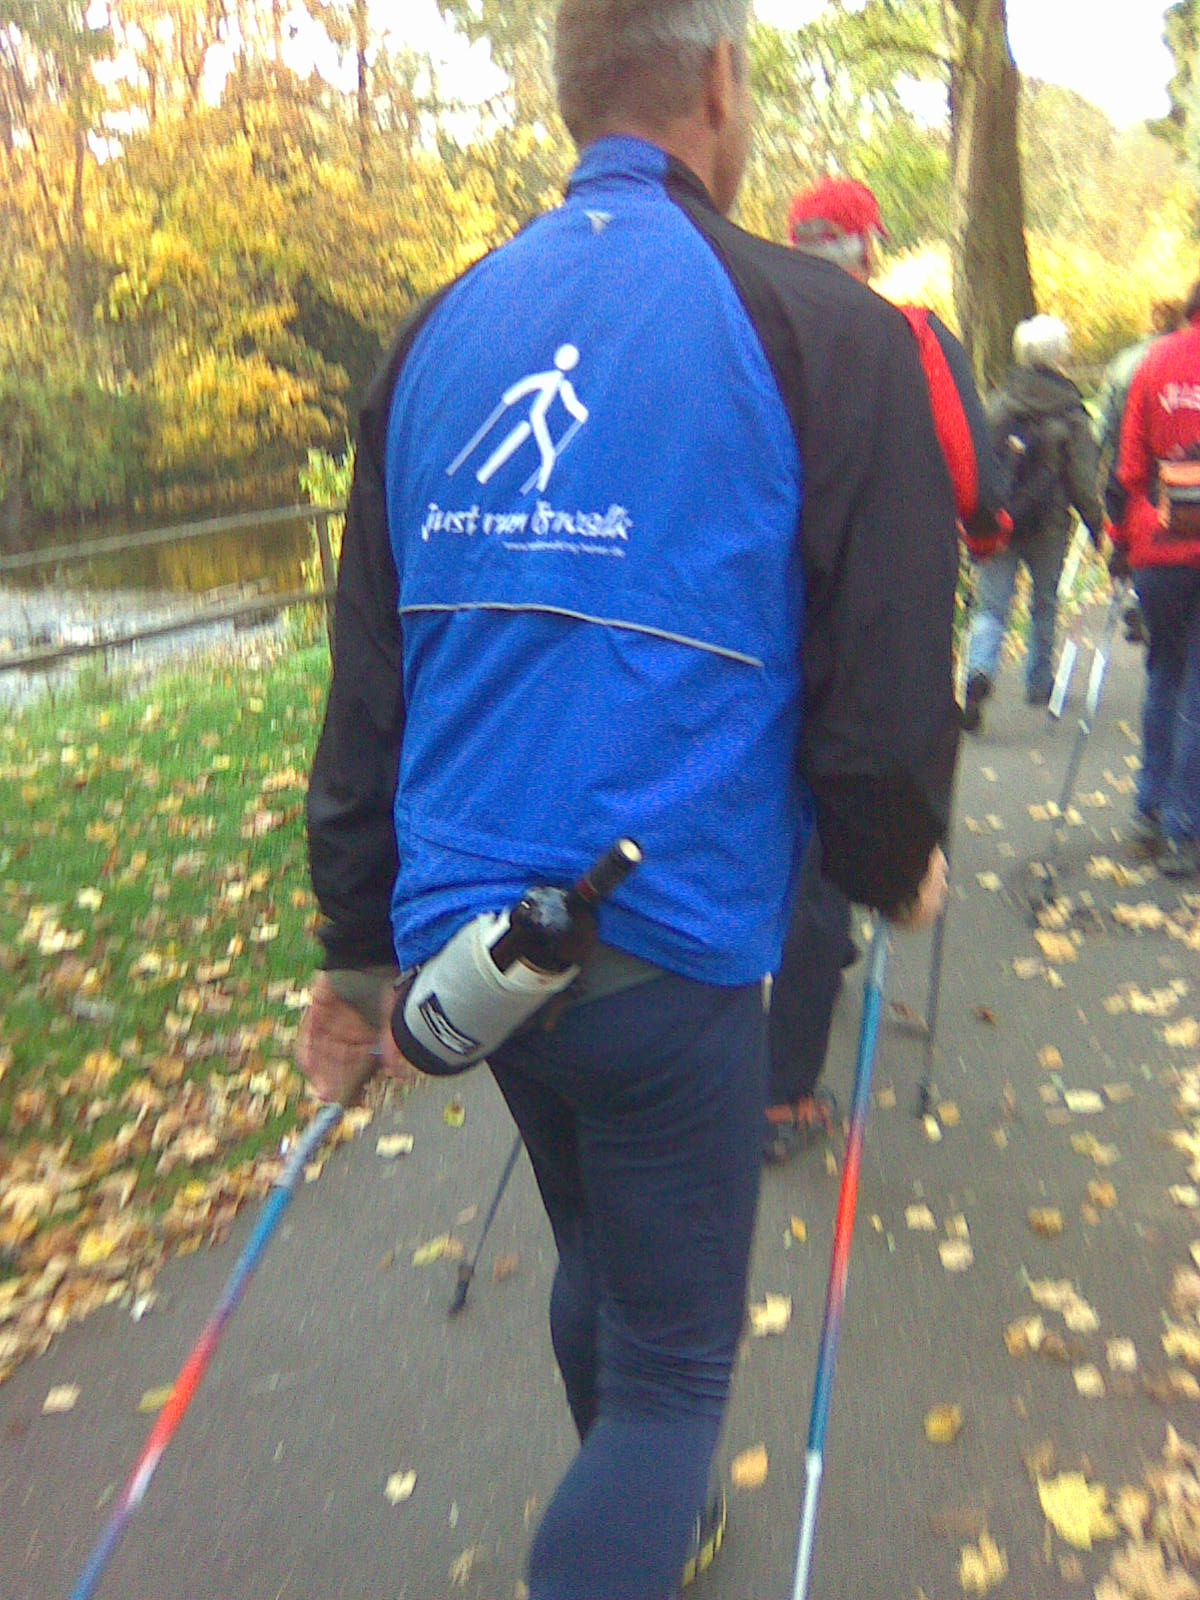 Nordicwalking mal anders.